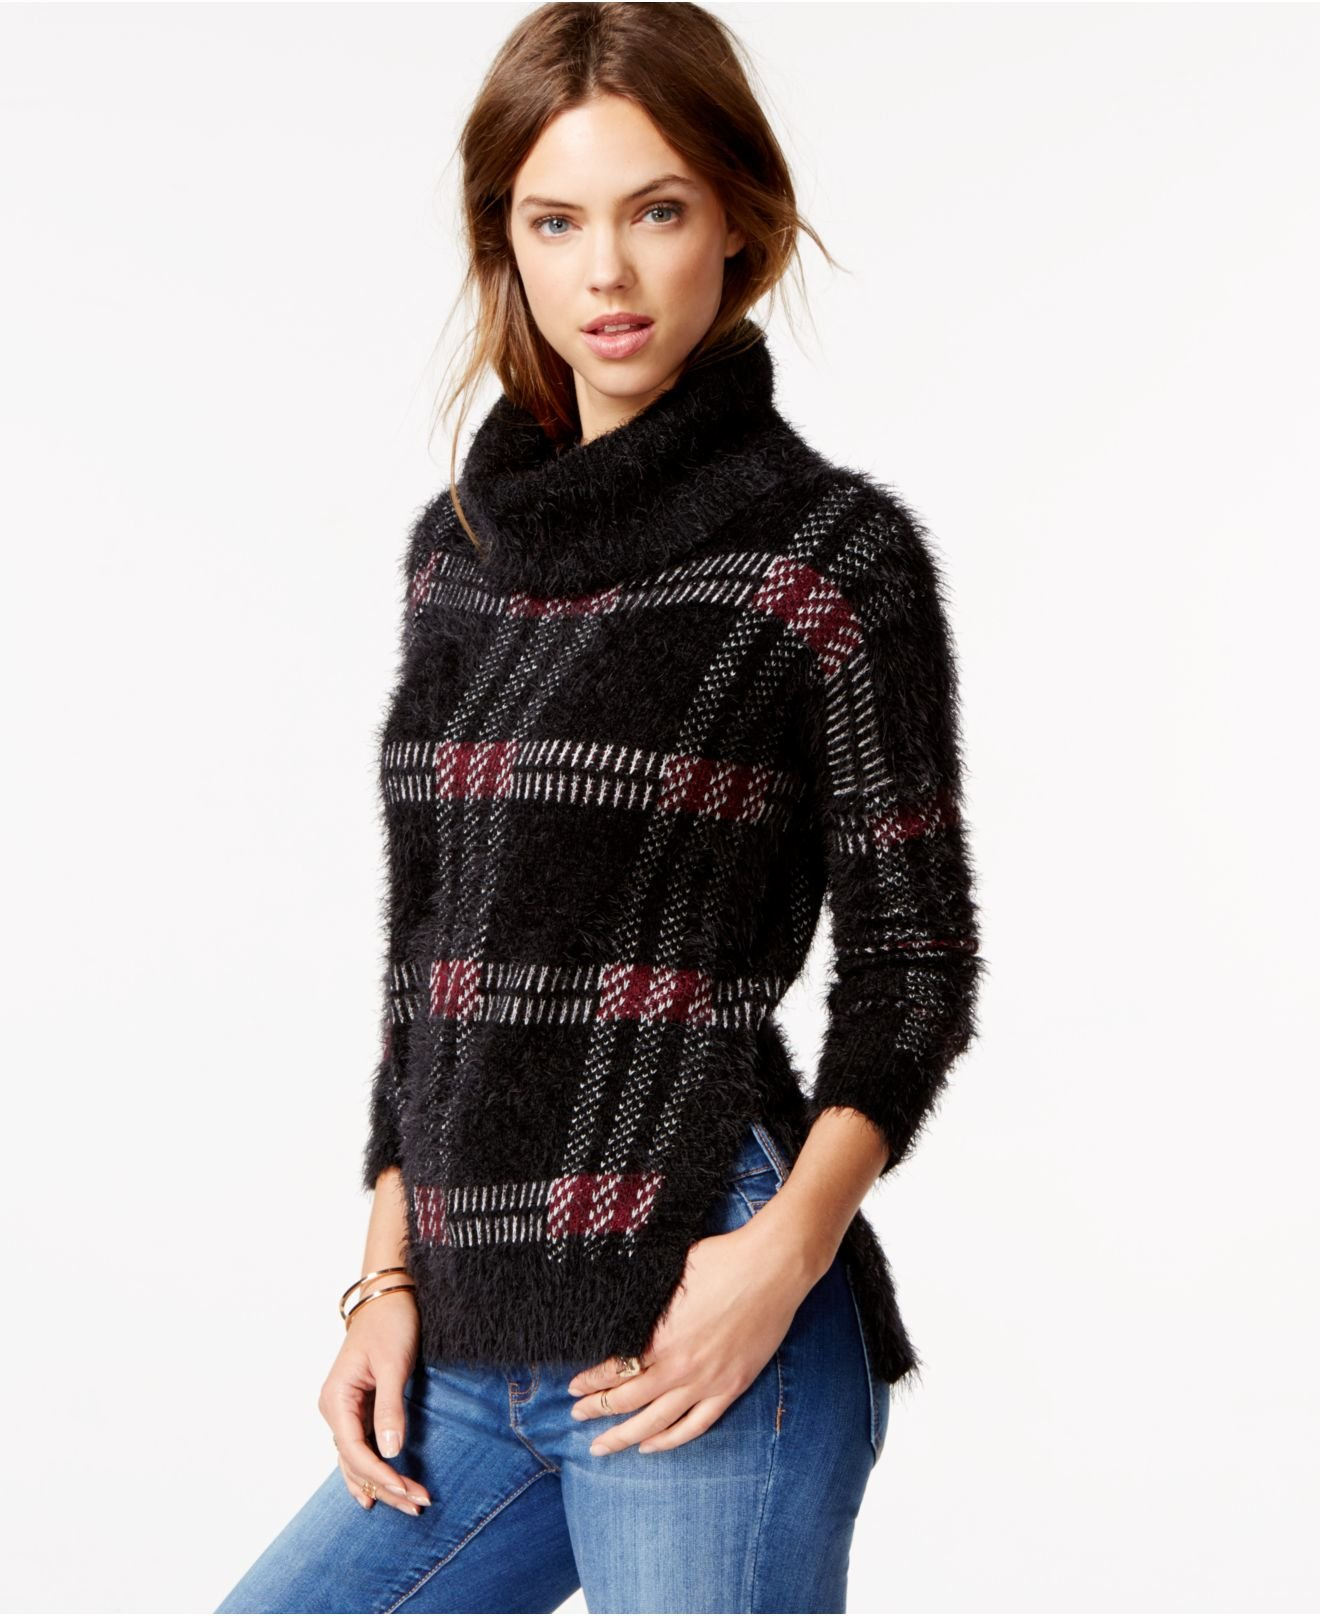 Navy Cable Knit Sweater